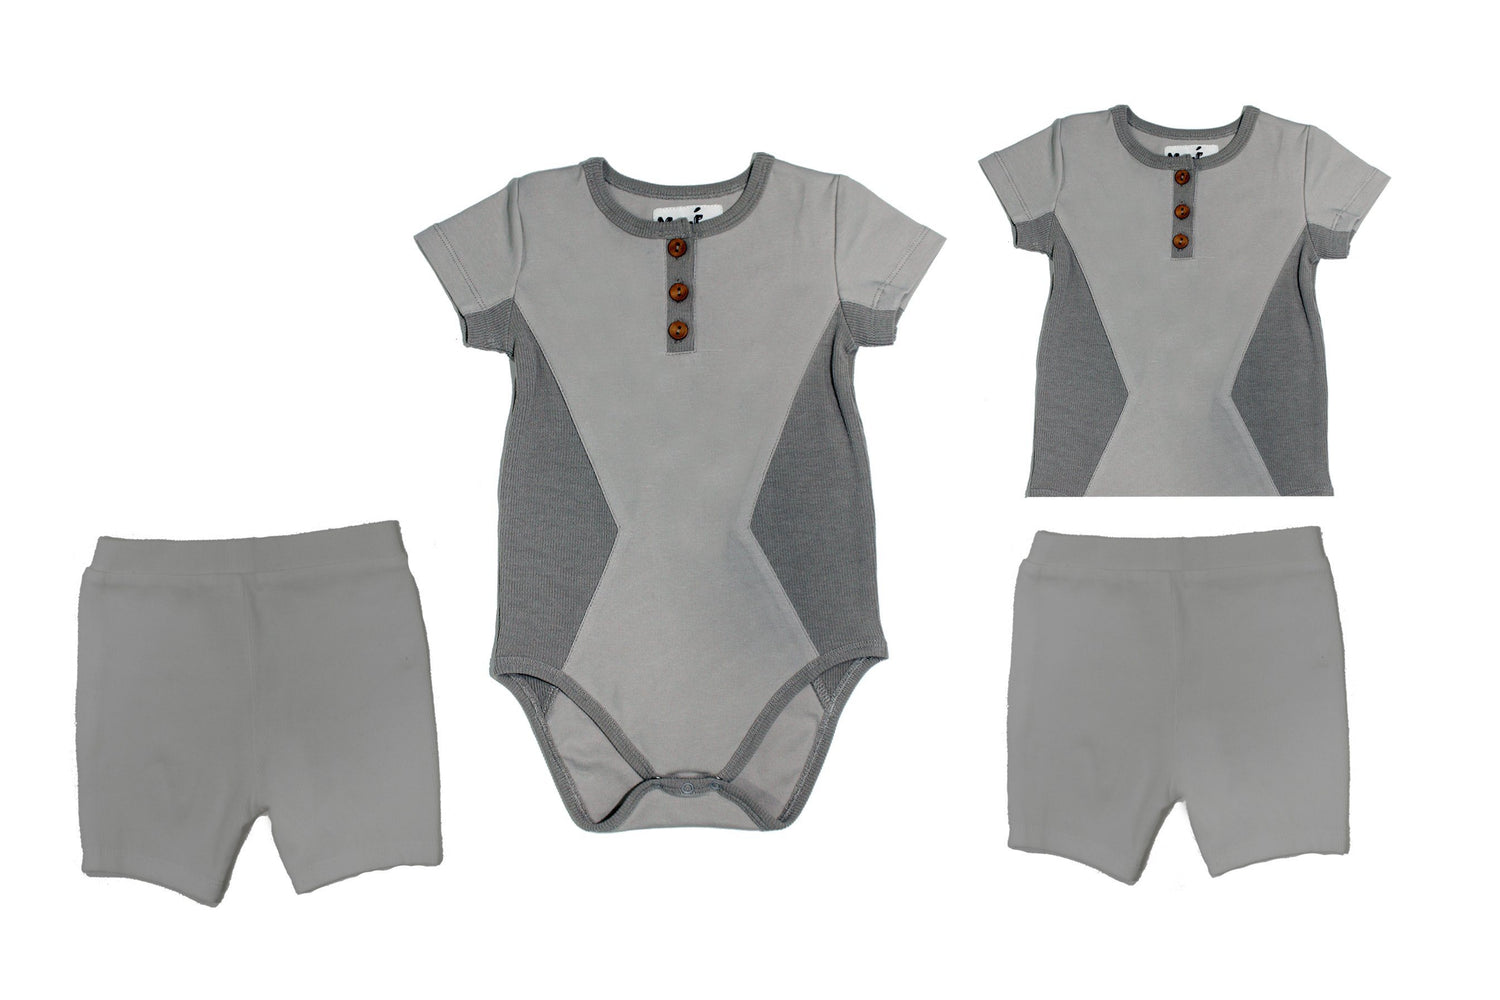 Two Piece Set Baby Sets Maniere Accessories Grey 3 Months